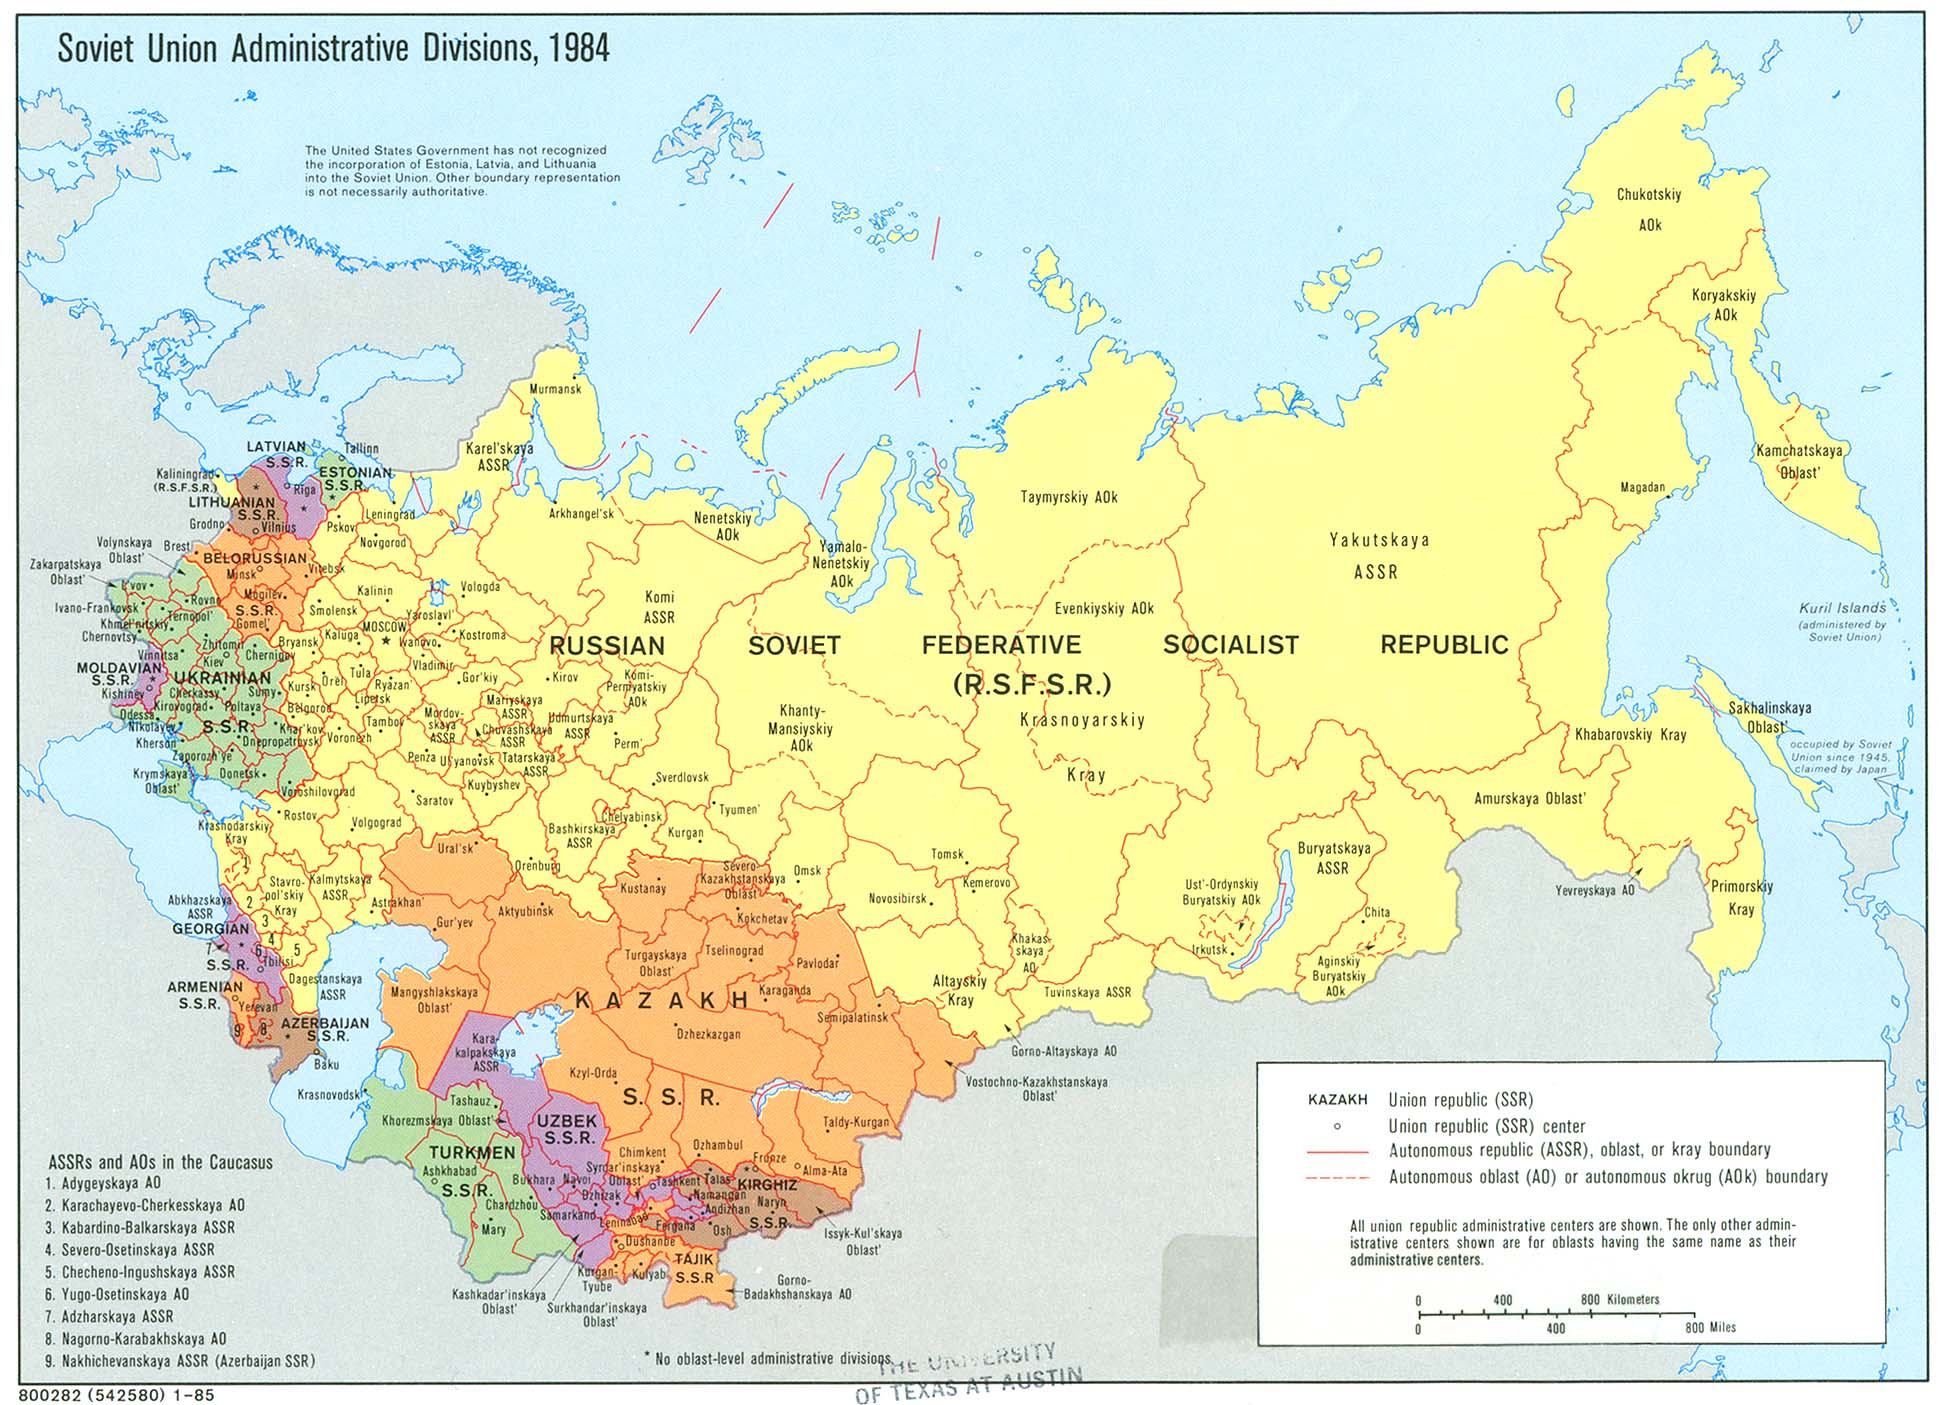 Russia and the Former Soviet Republics Maps - Perry ... on blank map of russia and ukraine, blank outline map russia, fill in maps of russia, large blank map of russia, blagoveshchensk russia, blank map of russia and the republics, kuril islands on map of russia, printable map russia, blank russian map, physical features of russia, google maps russia, outline of russia, blank political map of russia, blank map of western russia, blank physical map of russia, blackline map of russia, how close is alaska to russia, new siberian islands russia, blank russia map with rivers, blank map of russia and neighboring countries,